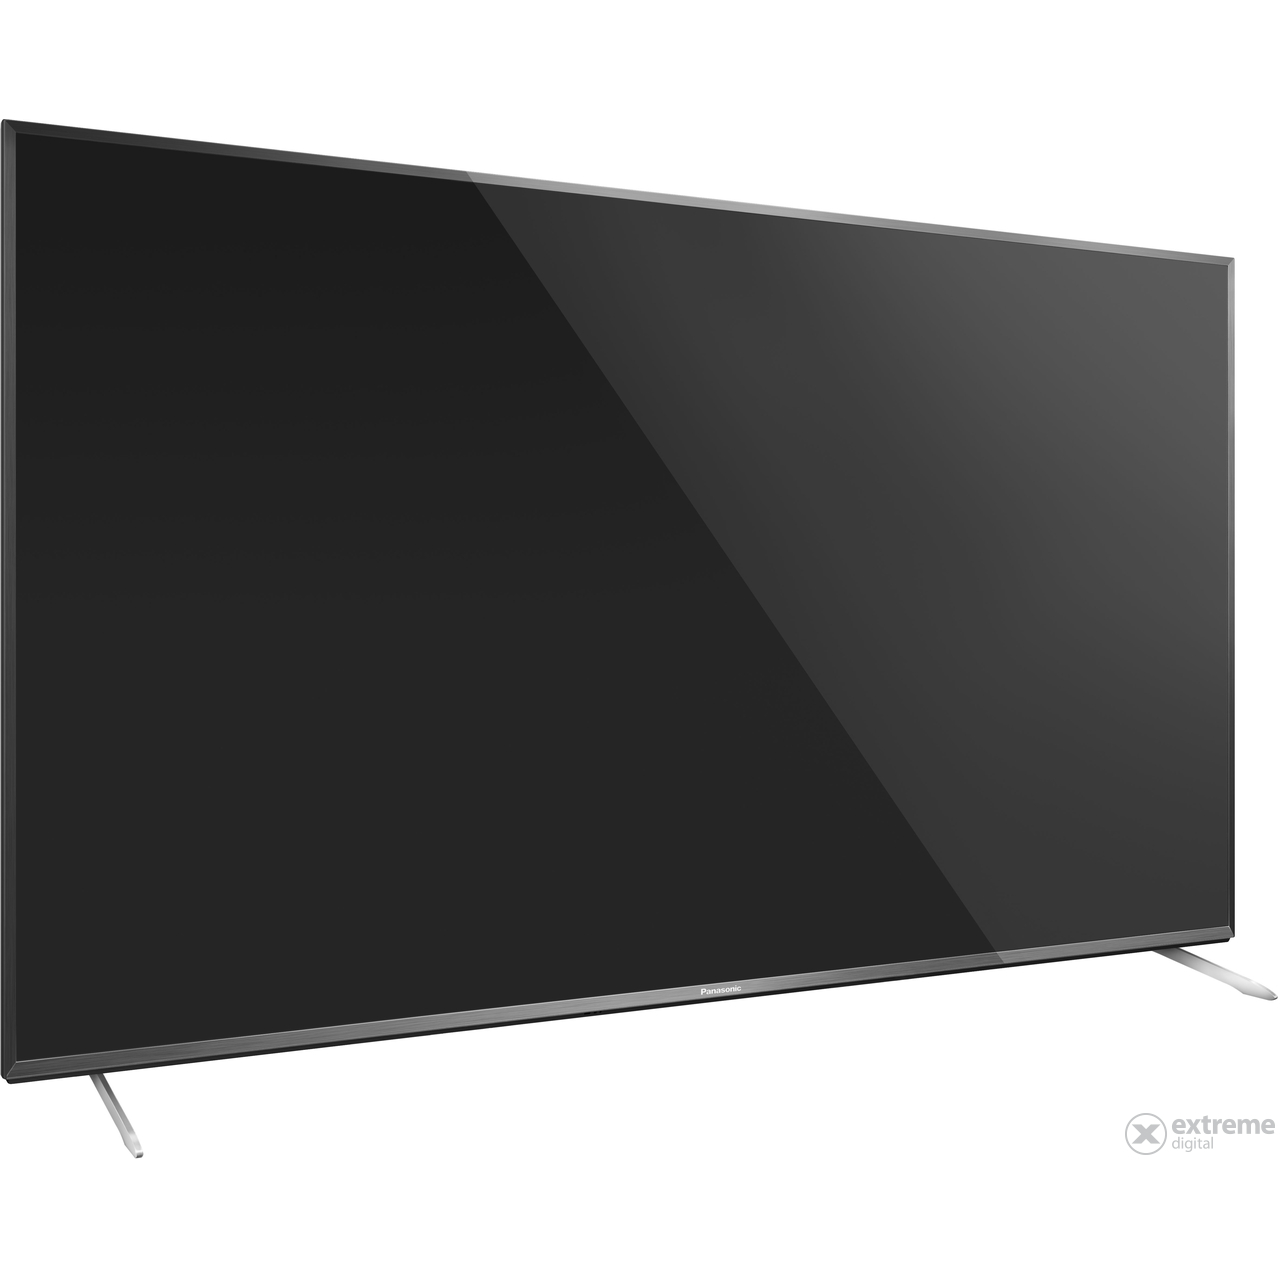 panasonic-tx-43cx740e-uhd-3d-smart-led-televizio_71c30803.jpg